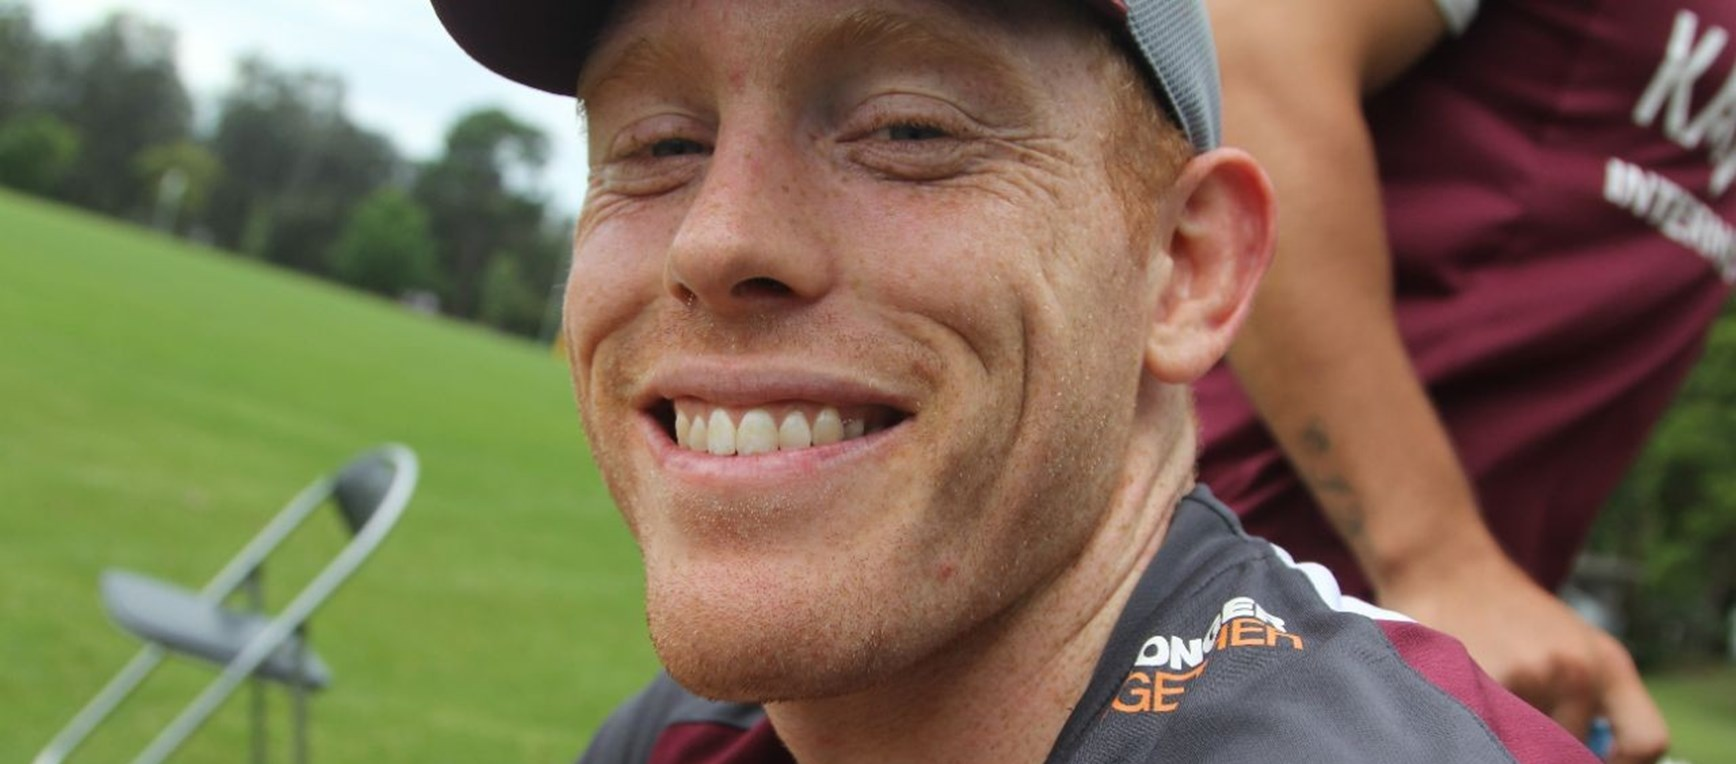 PHOTOS | Smiles all round at training as Xmas looms